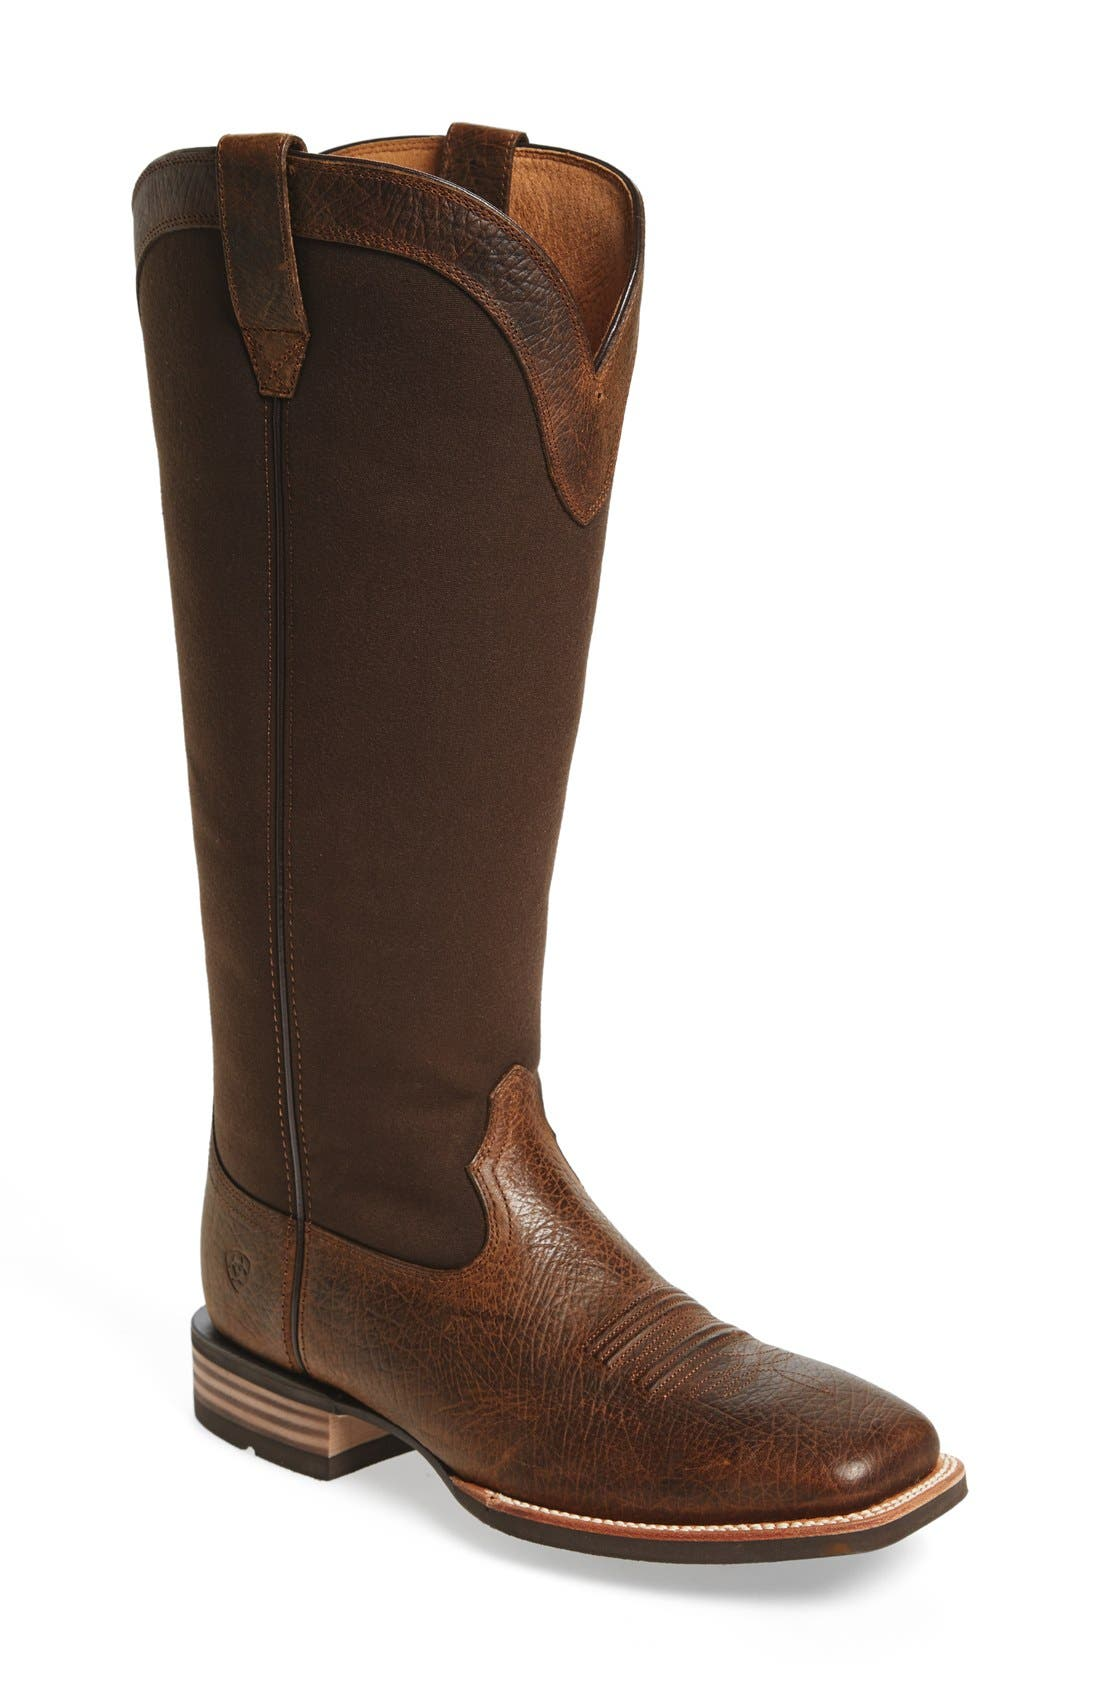 ARIAT 'Quickdraw Snake' Cowboy Boot, Main, color, 200